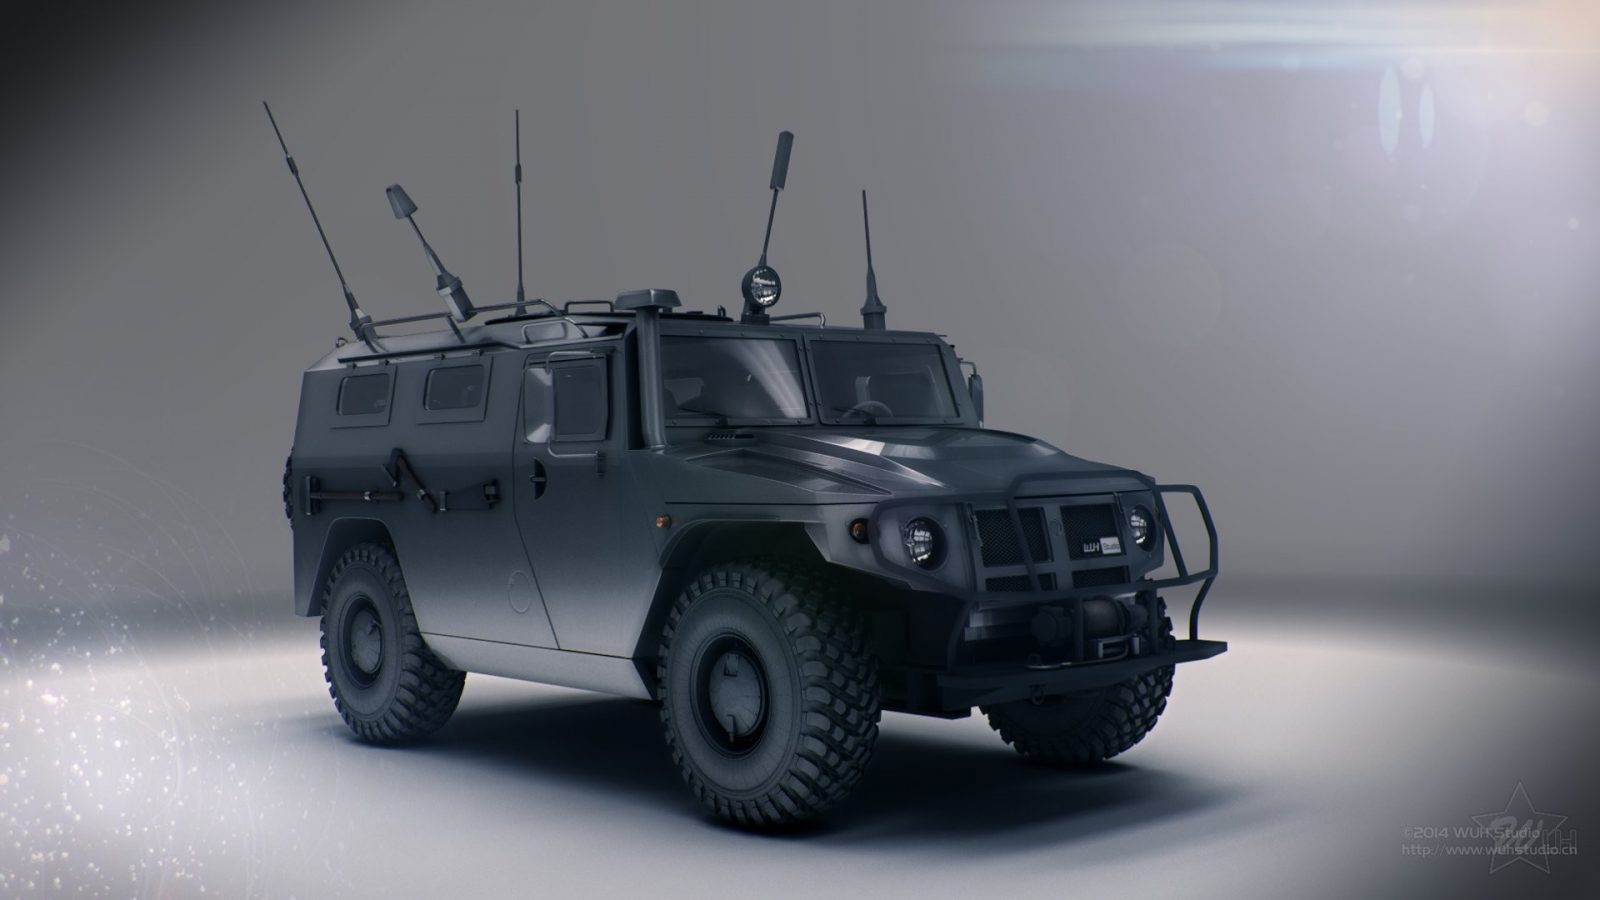 200 Km To Miles Per Hour >> Top Military like Vehicles Which Civilian Can Buy and Drive